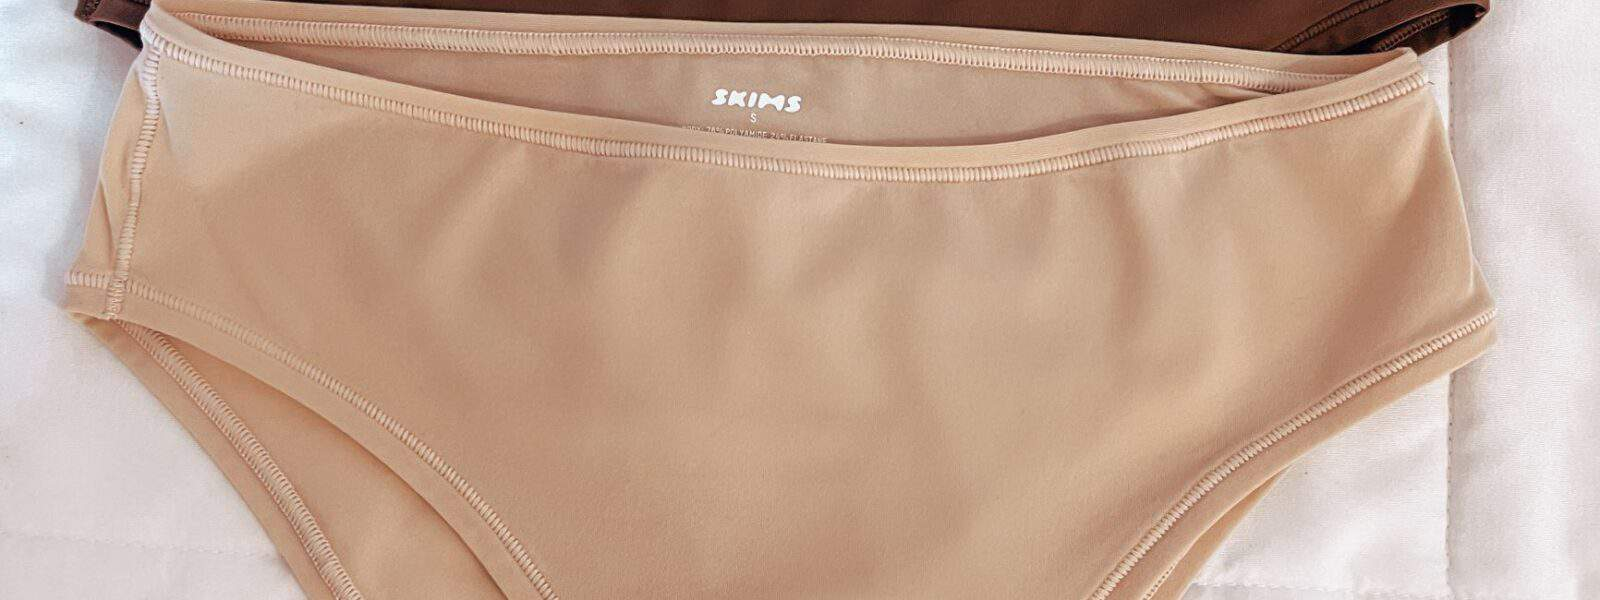 I tried SKIMS underwear for the first time, and this is what I have to say…